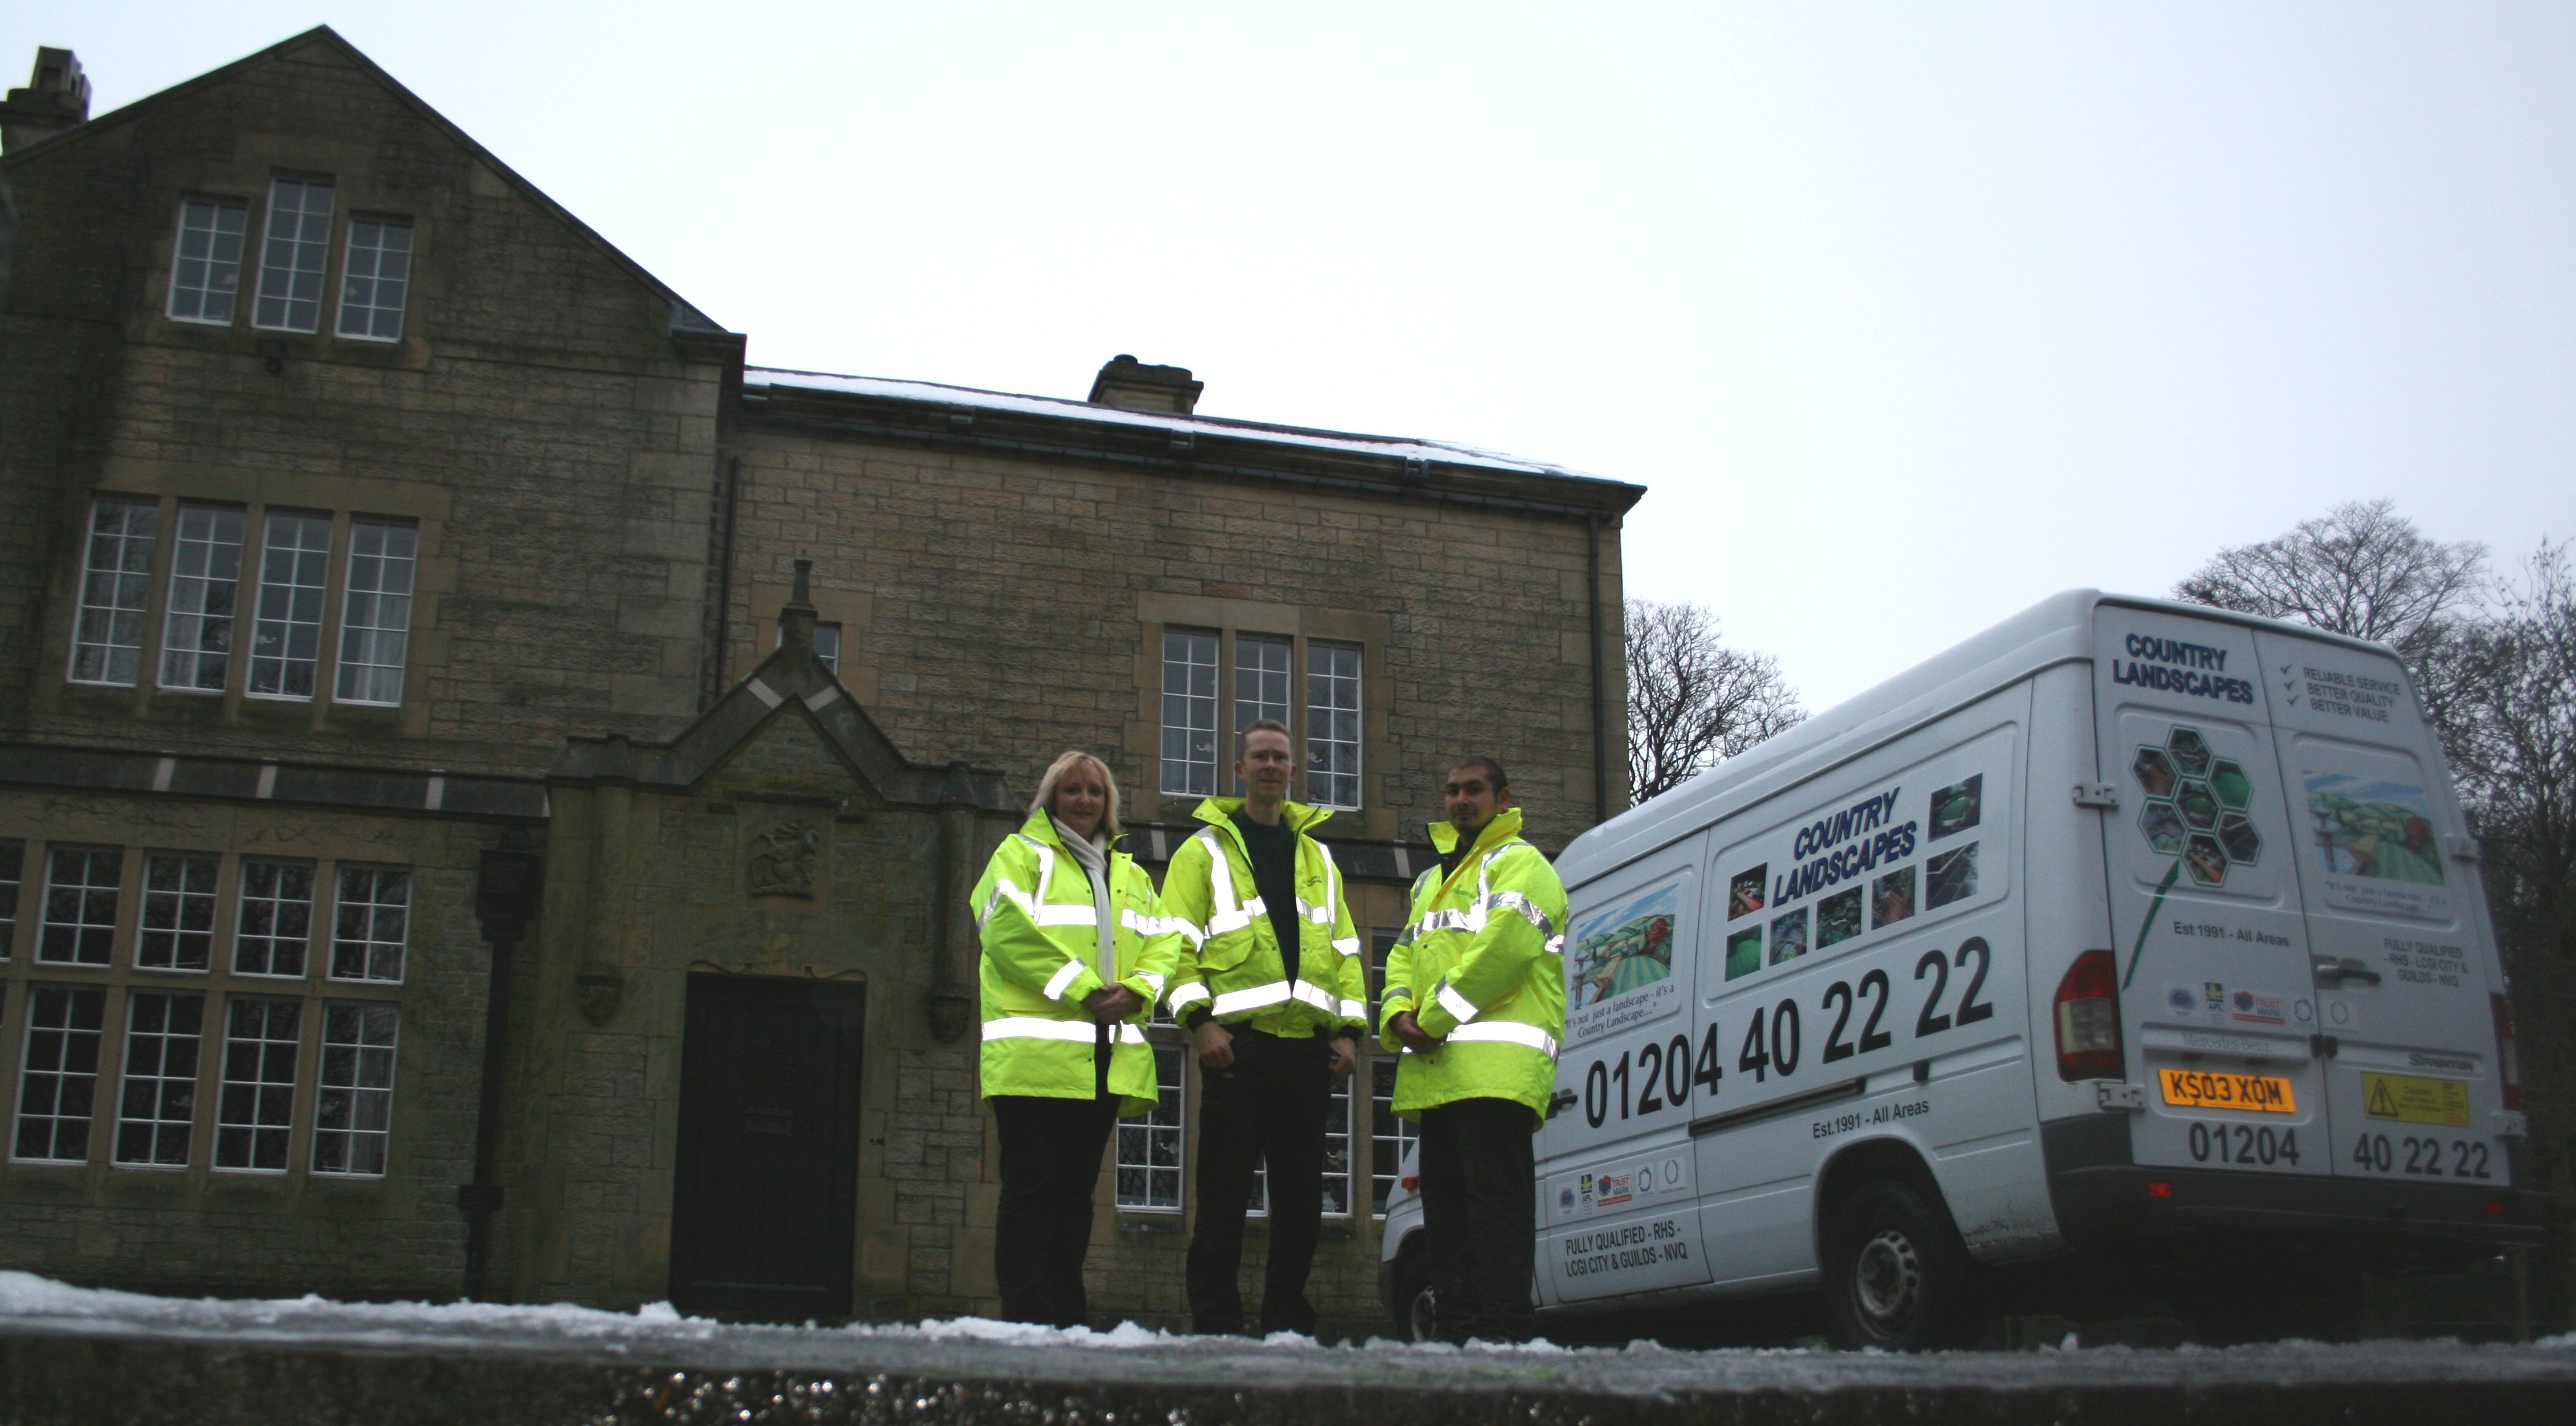 some of the team who worked at Tor Side including Anita Lee and Mick pictured with new van signage and logo